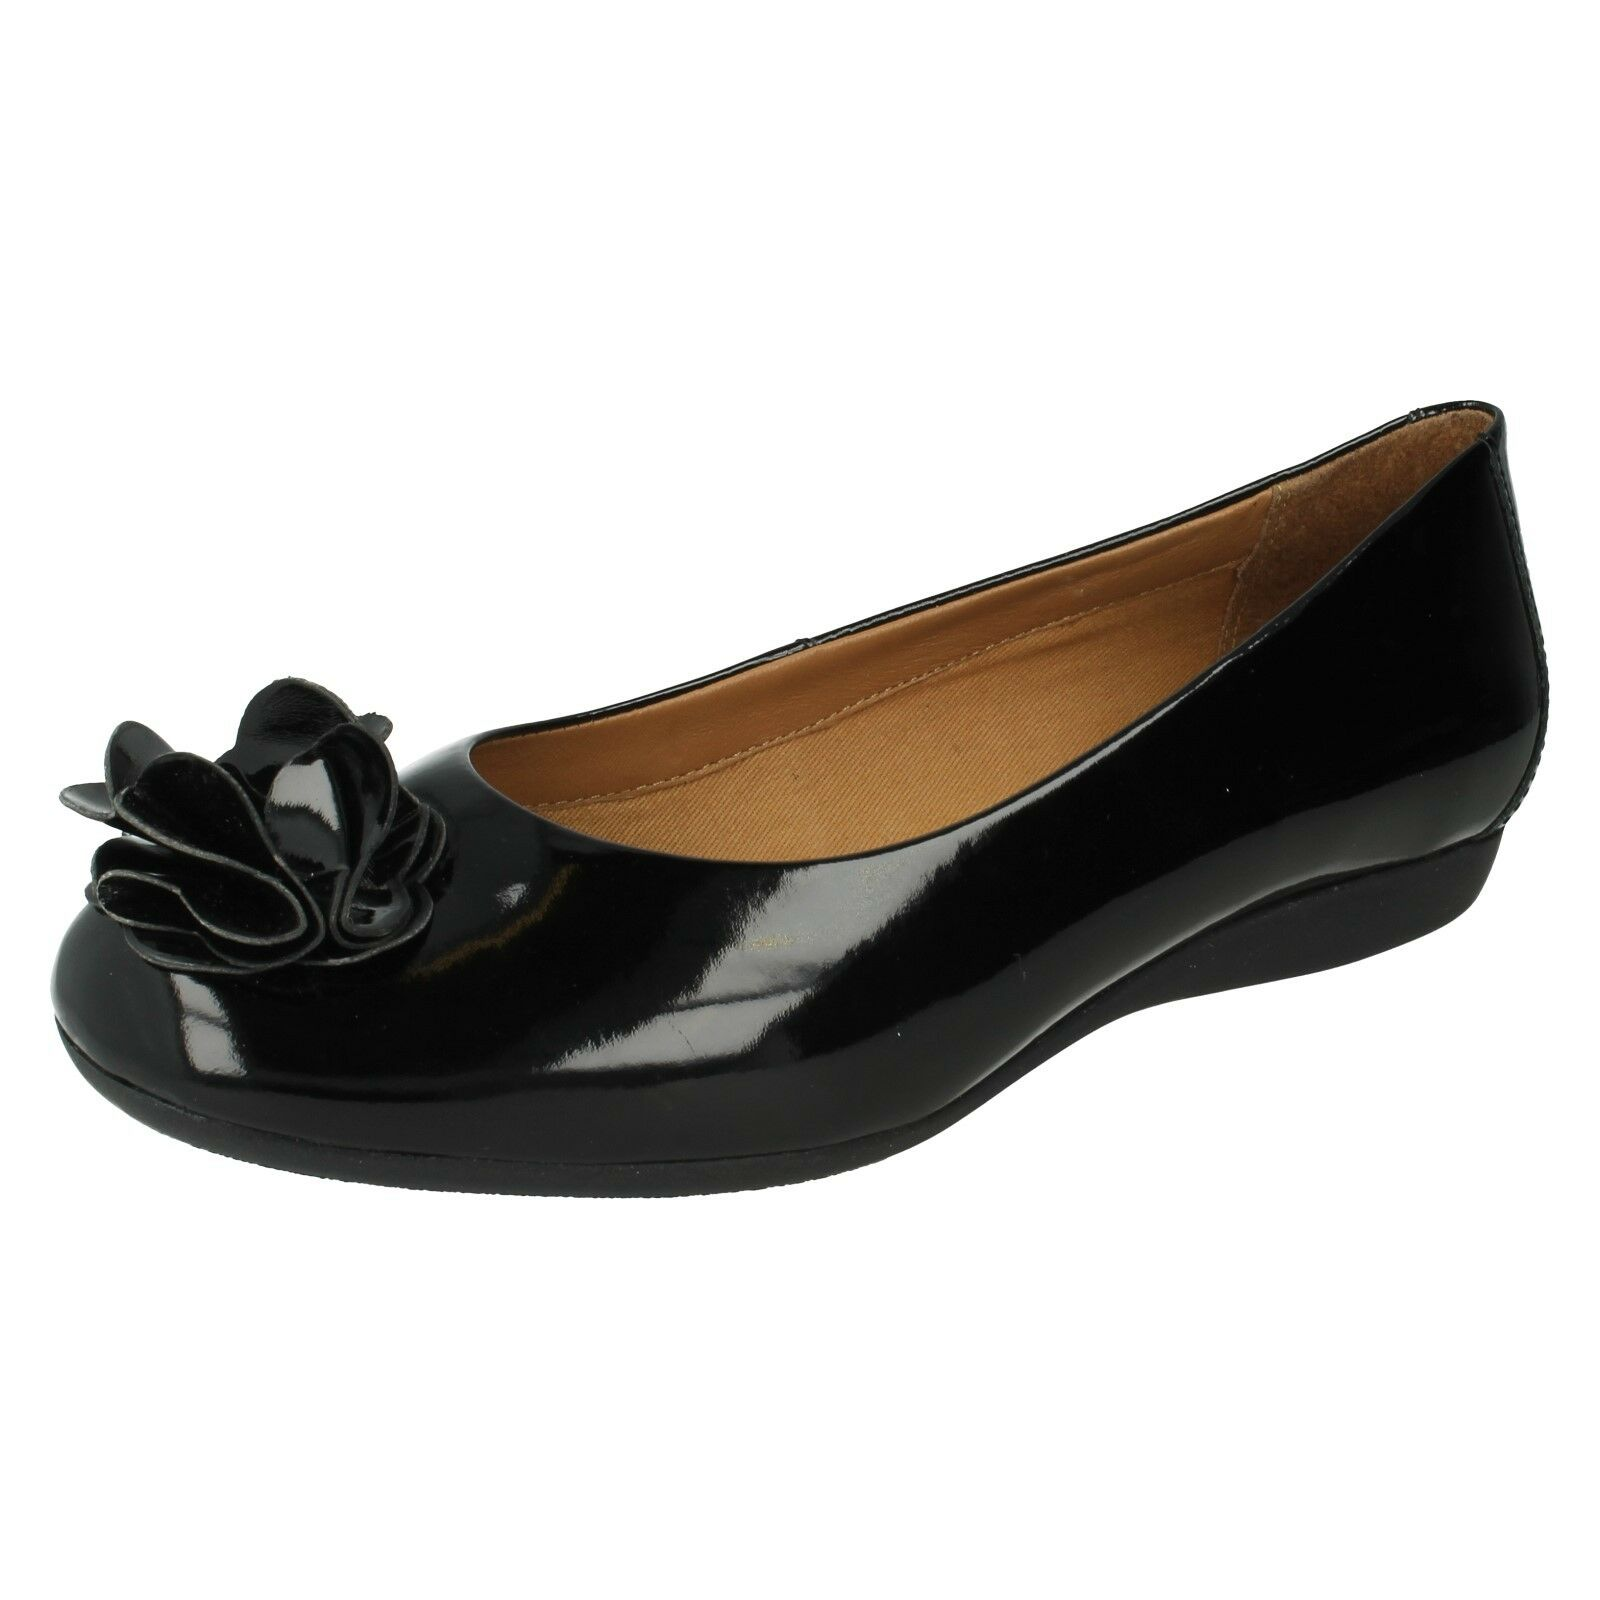 LADIES K PONY BY CLARKS LEATHER FLAT PUMPS SOFT TEXTURED PONY K EFFECT AUDRY TULIP 4588ab